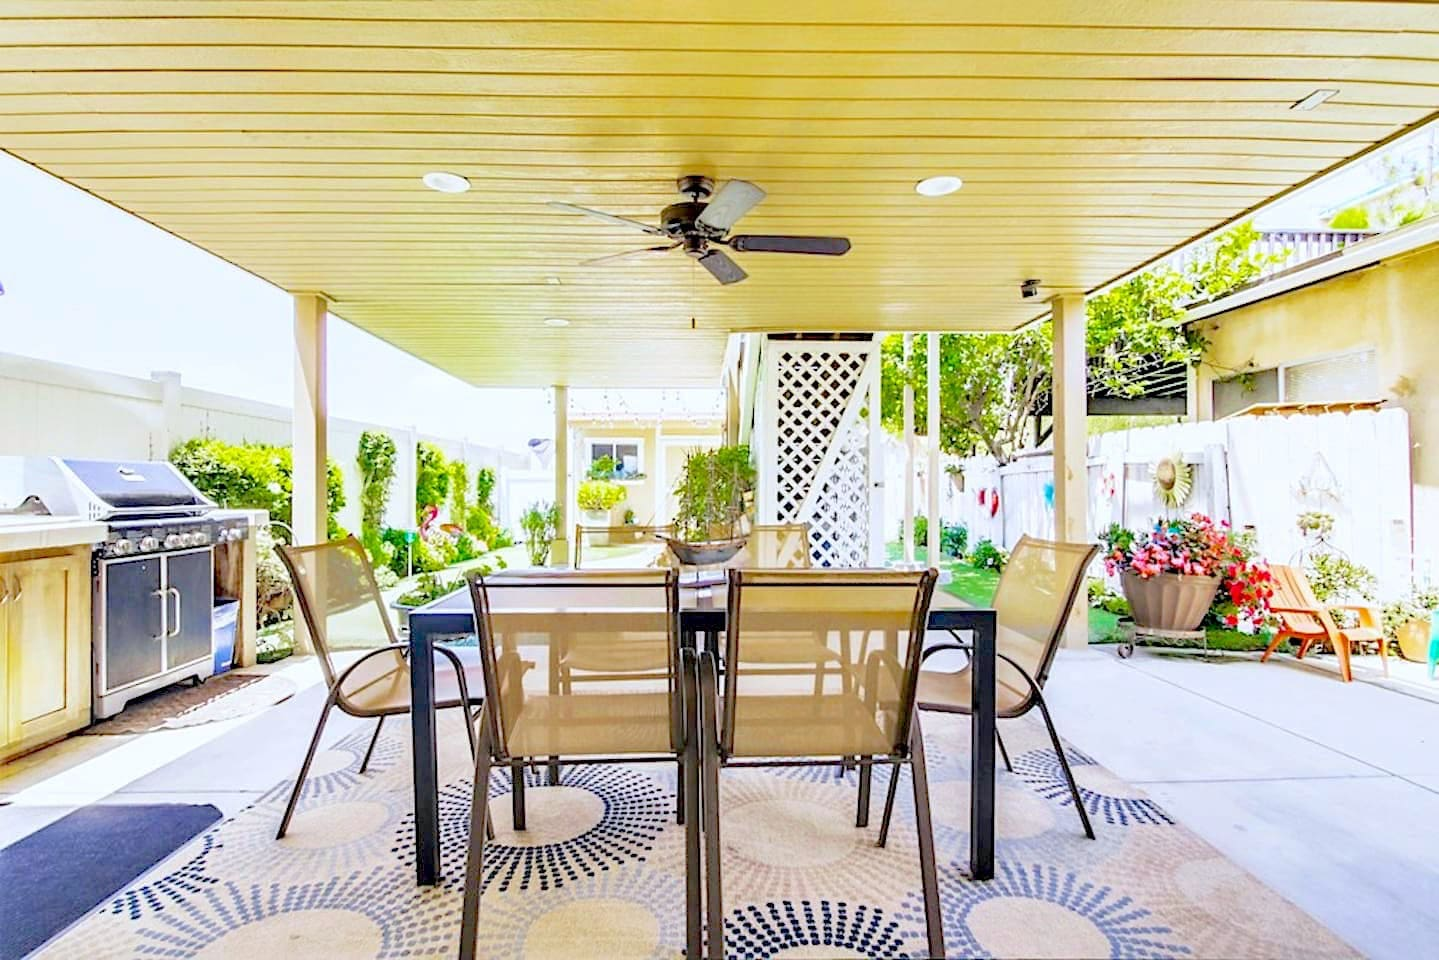 This is the definition of California outdoor living with this patio/grill setup!